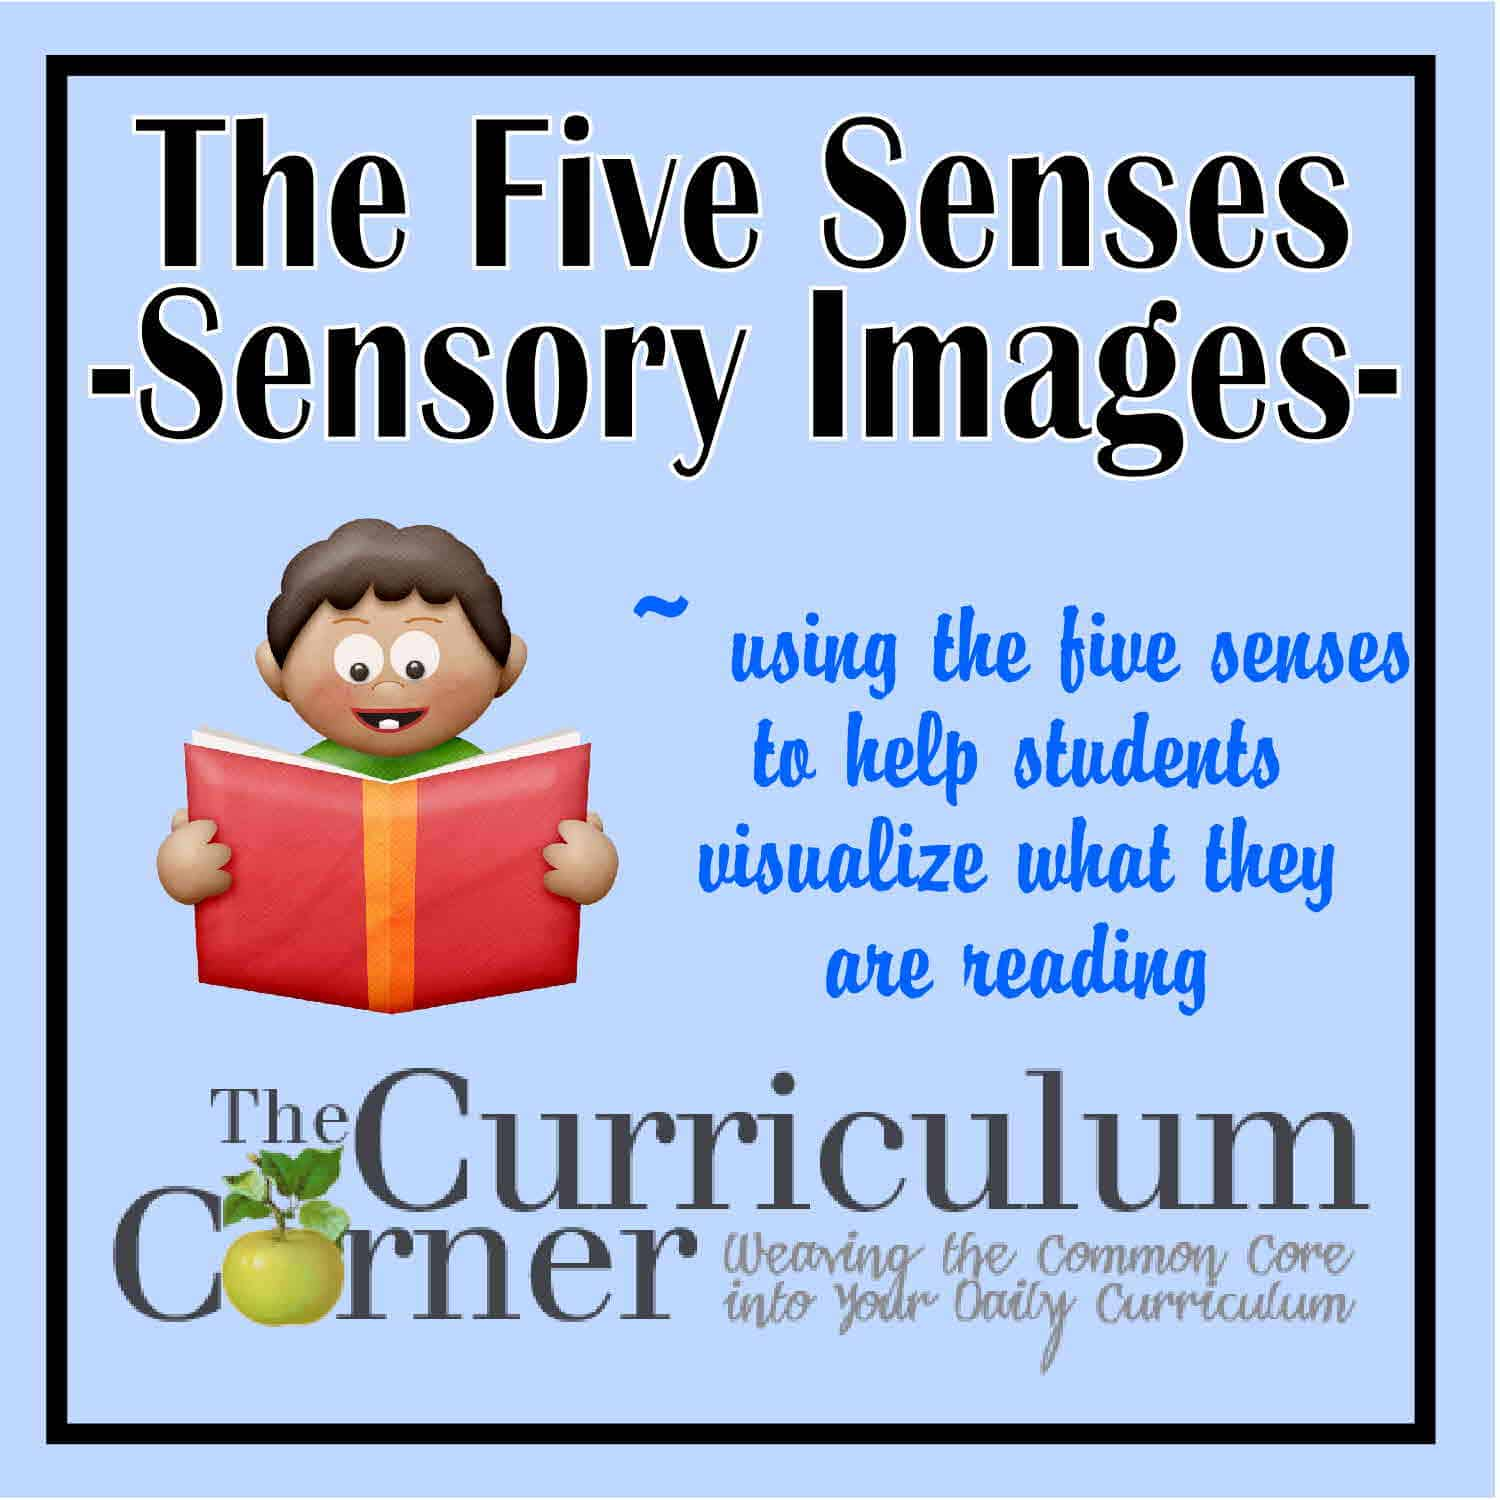 The Five Senses – Sensory Images